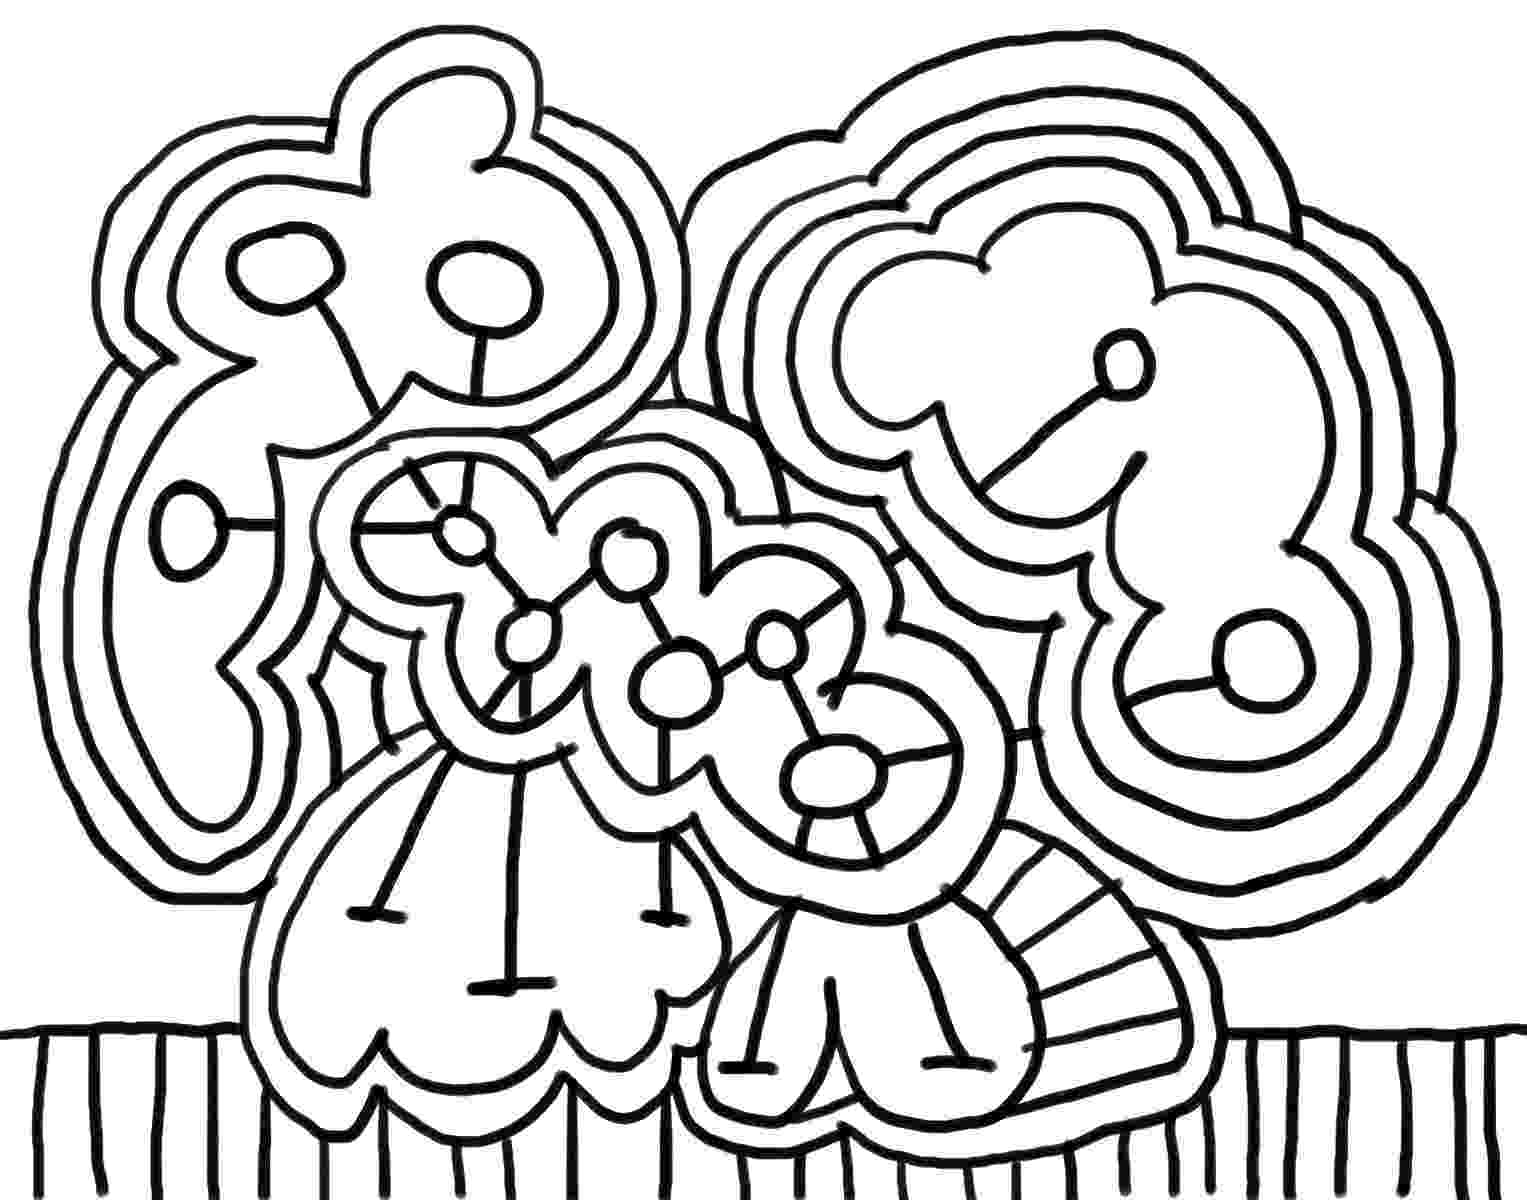 abstract art coloring pages free printable abstract coloring pages for kids art coloring abstract pages 1 1